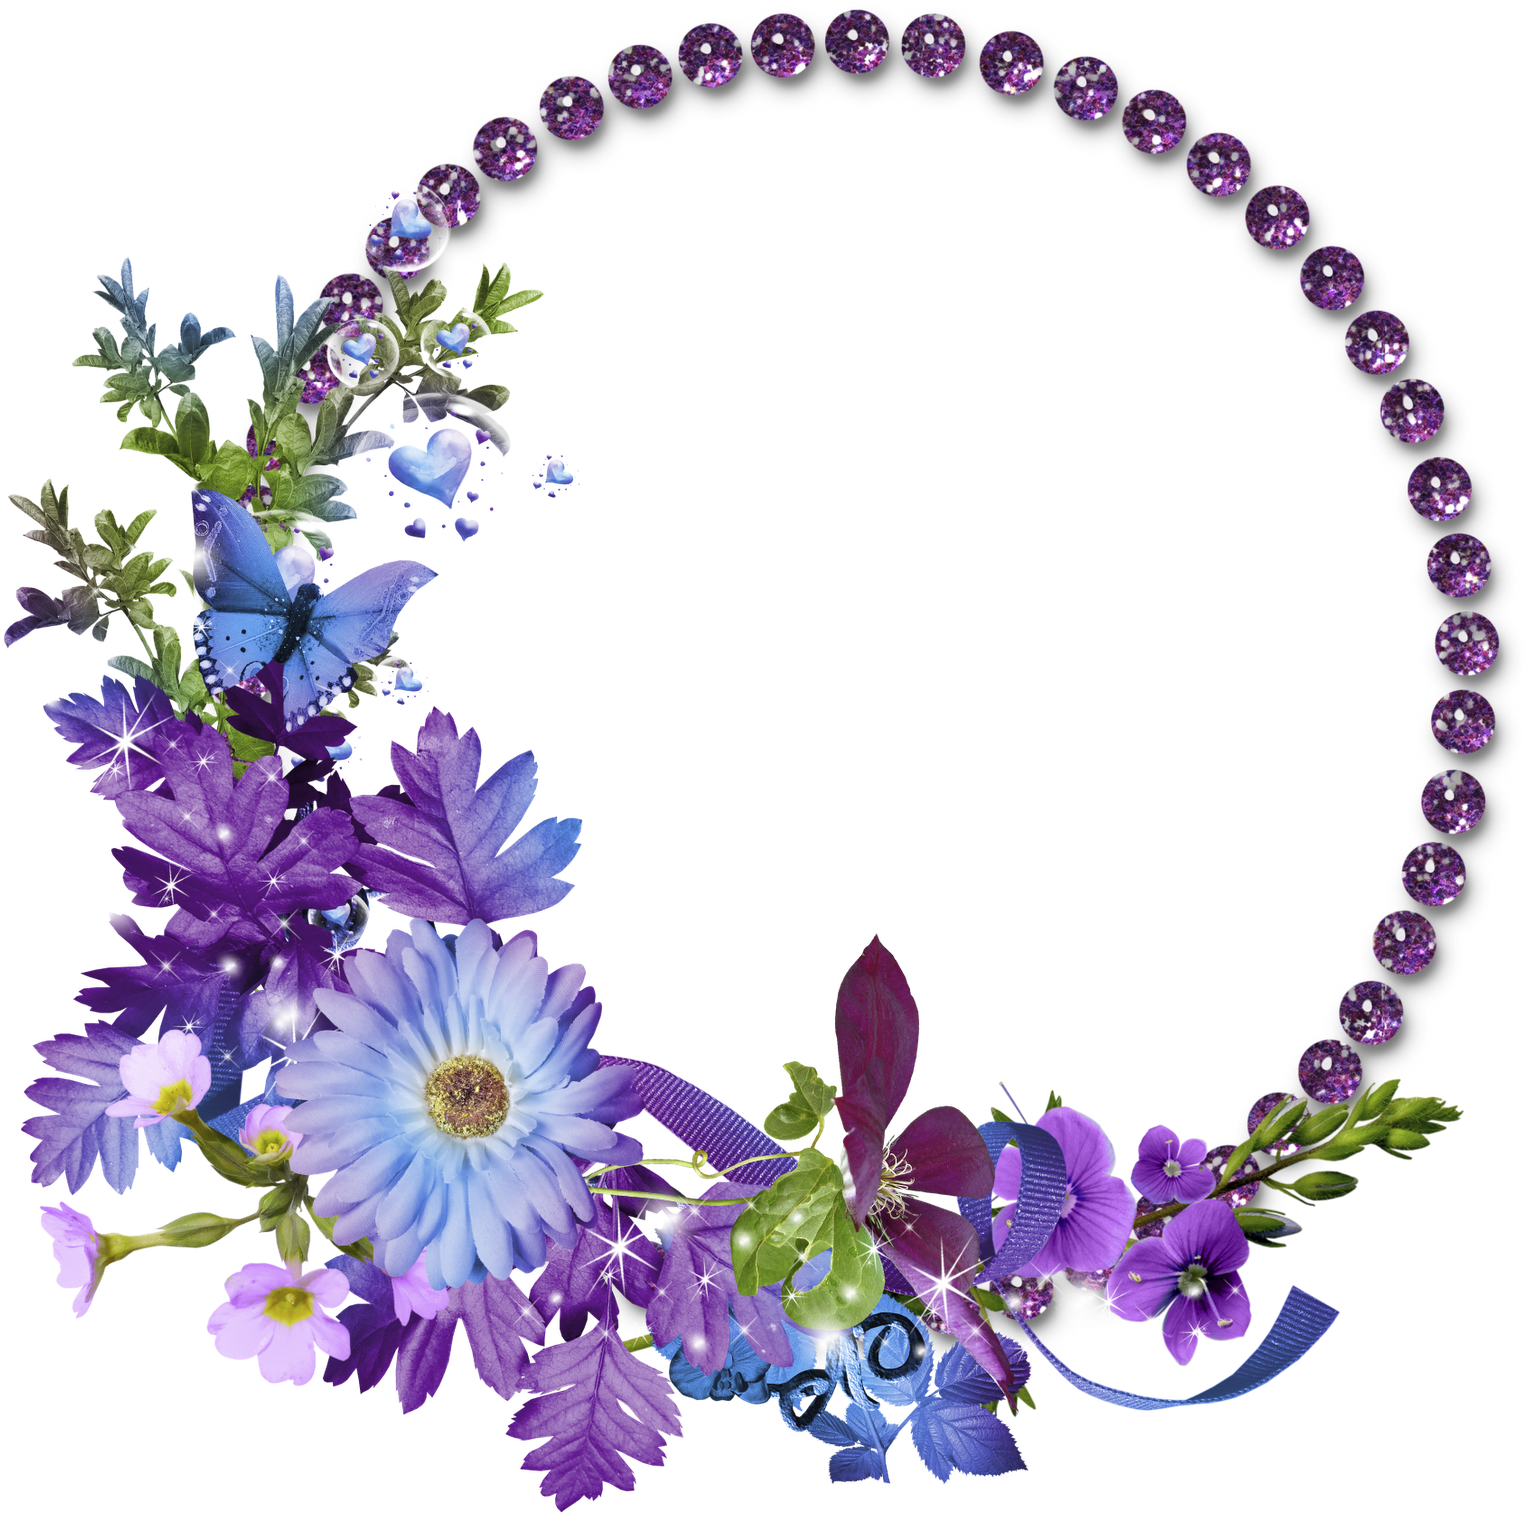 Transparent circle frame clipart - Floral Round Frame Png Transparent Image - Circle Flower Frame Png